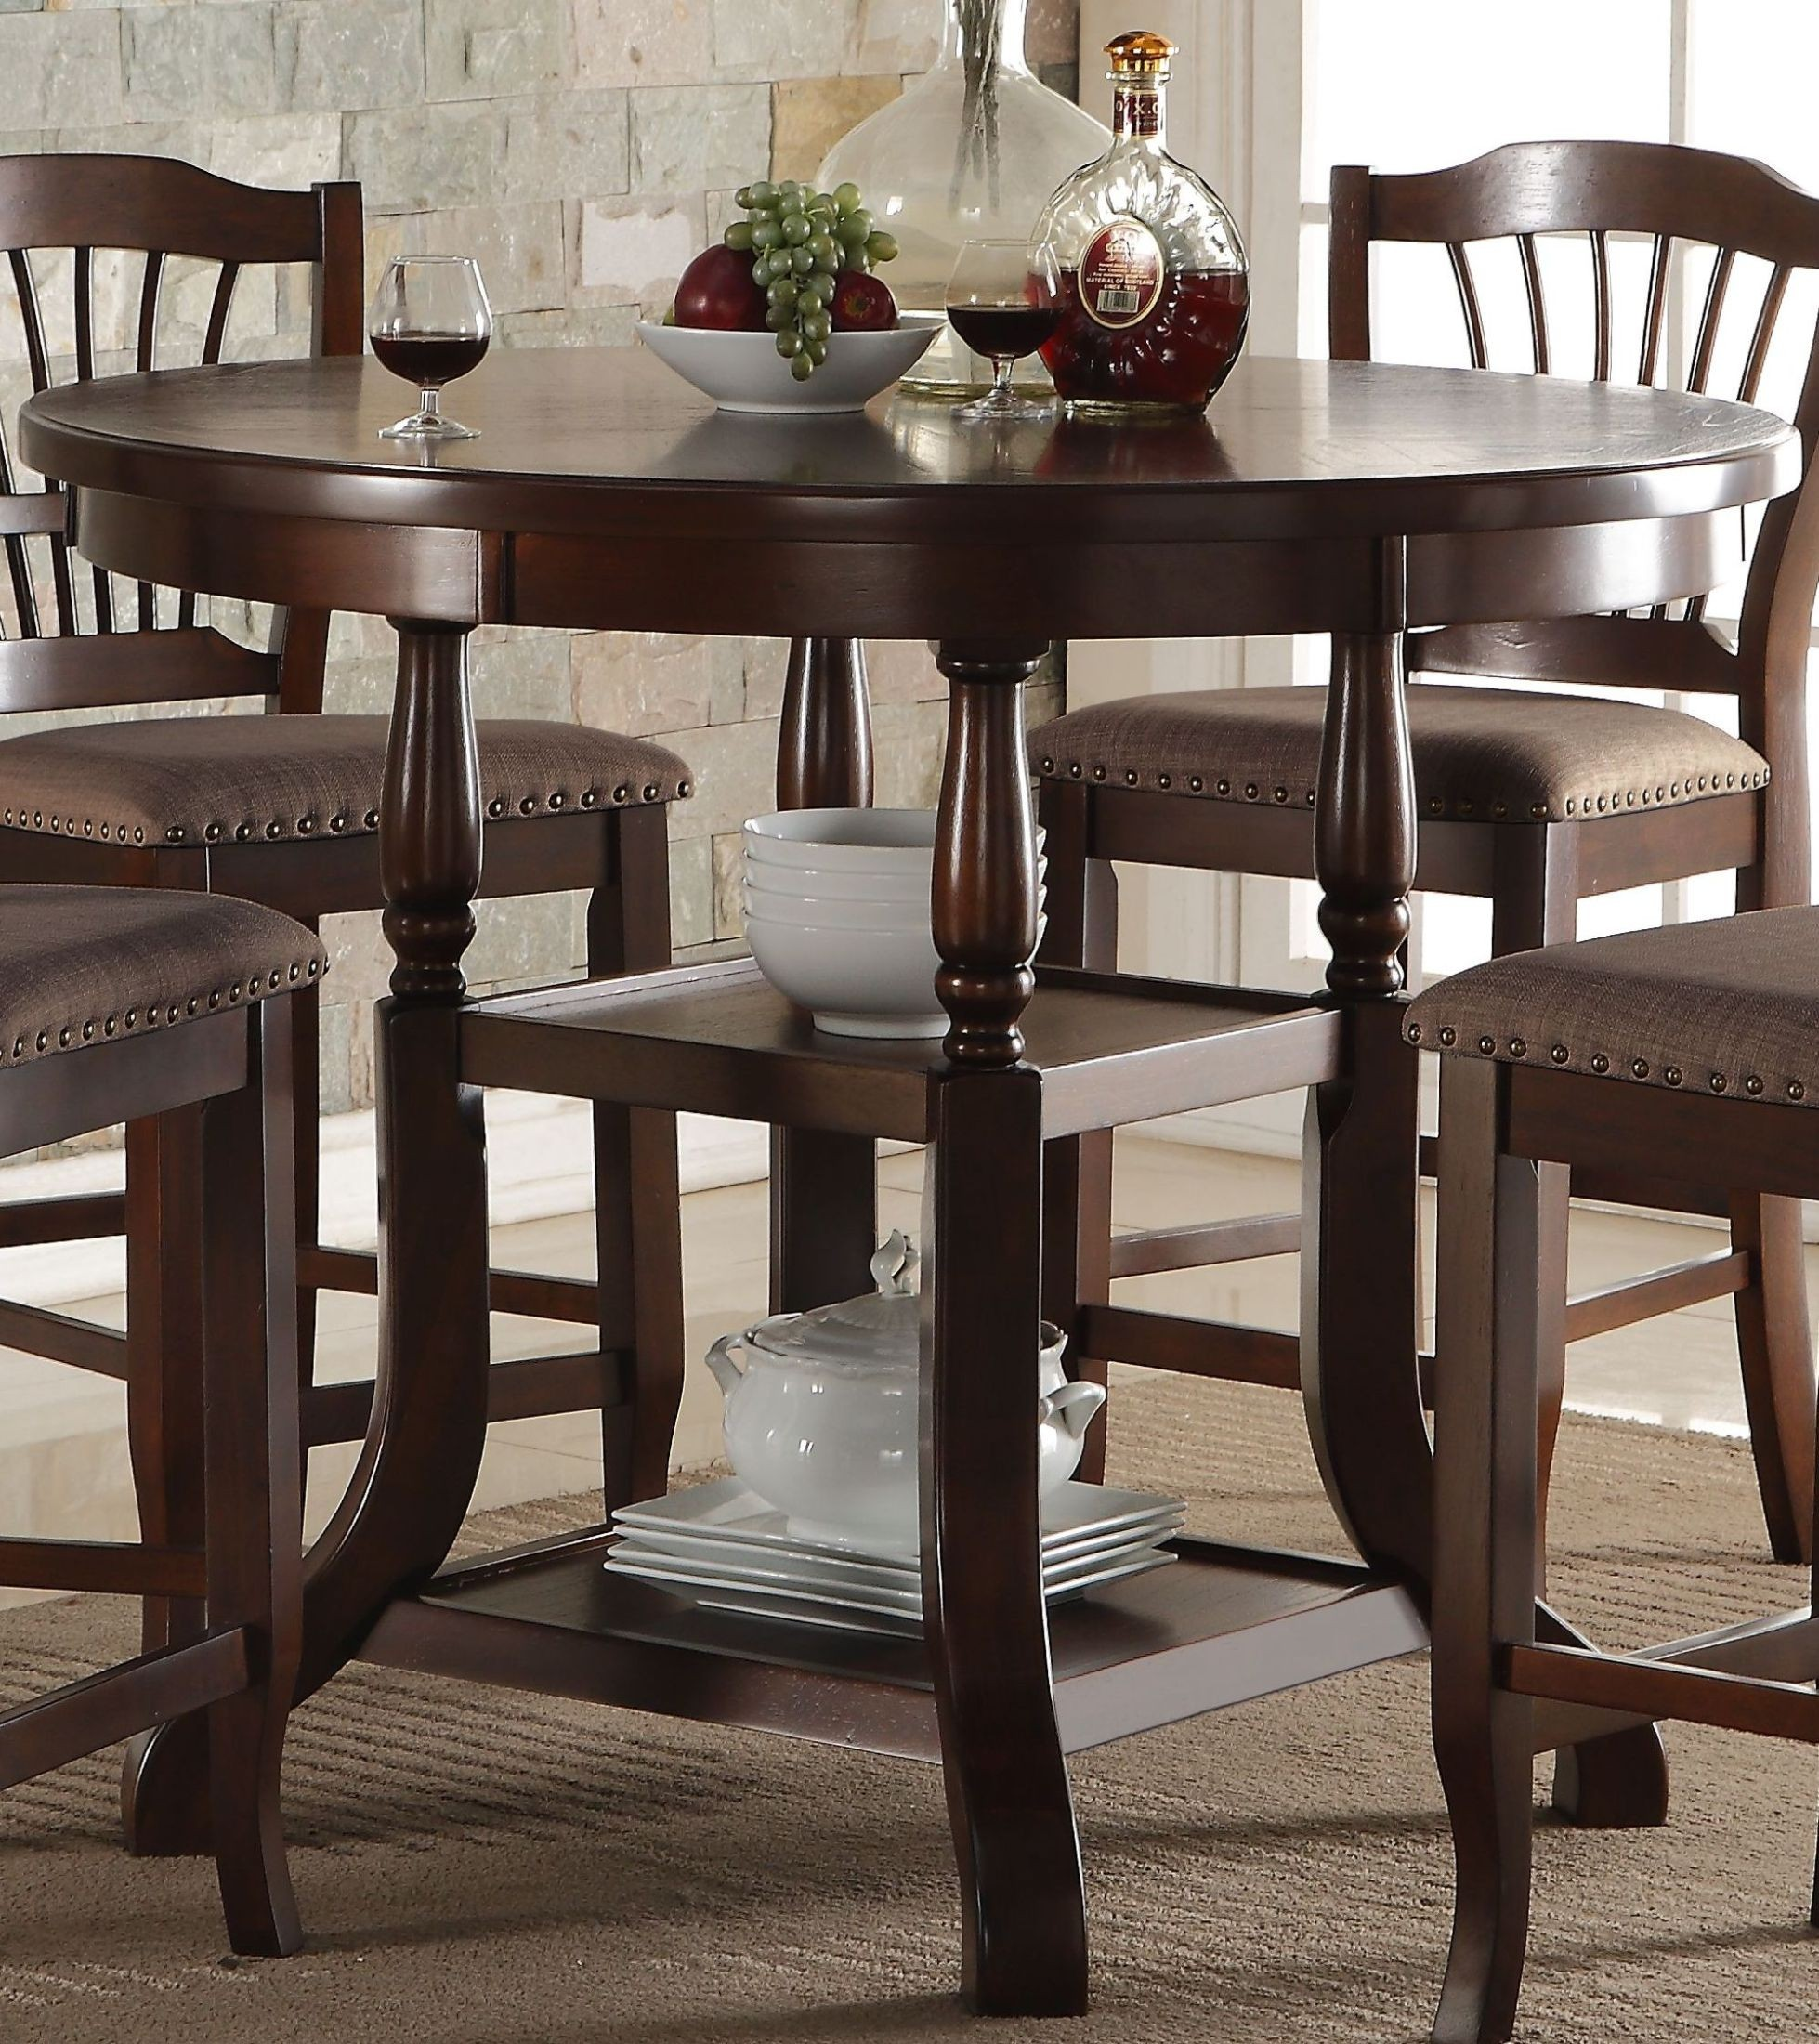 Counter Height Dining Tables: Bixby Espresso Round Counter Height Dining Table From New